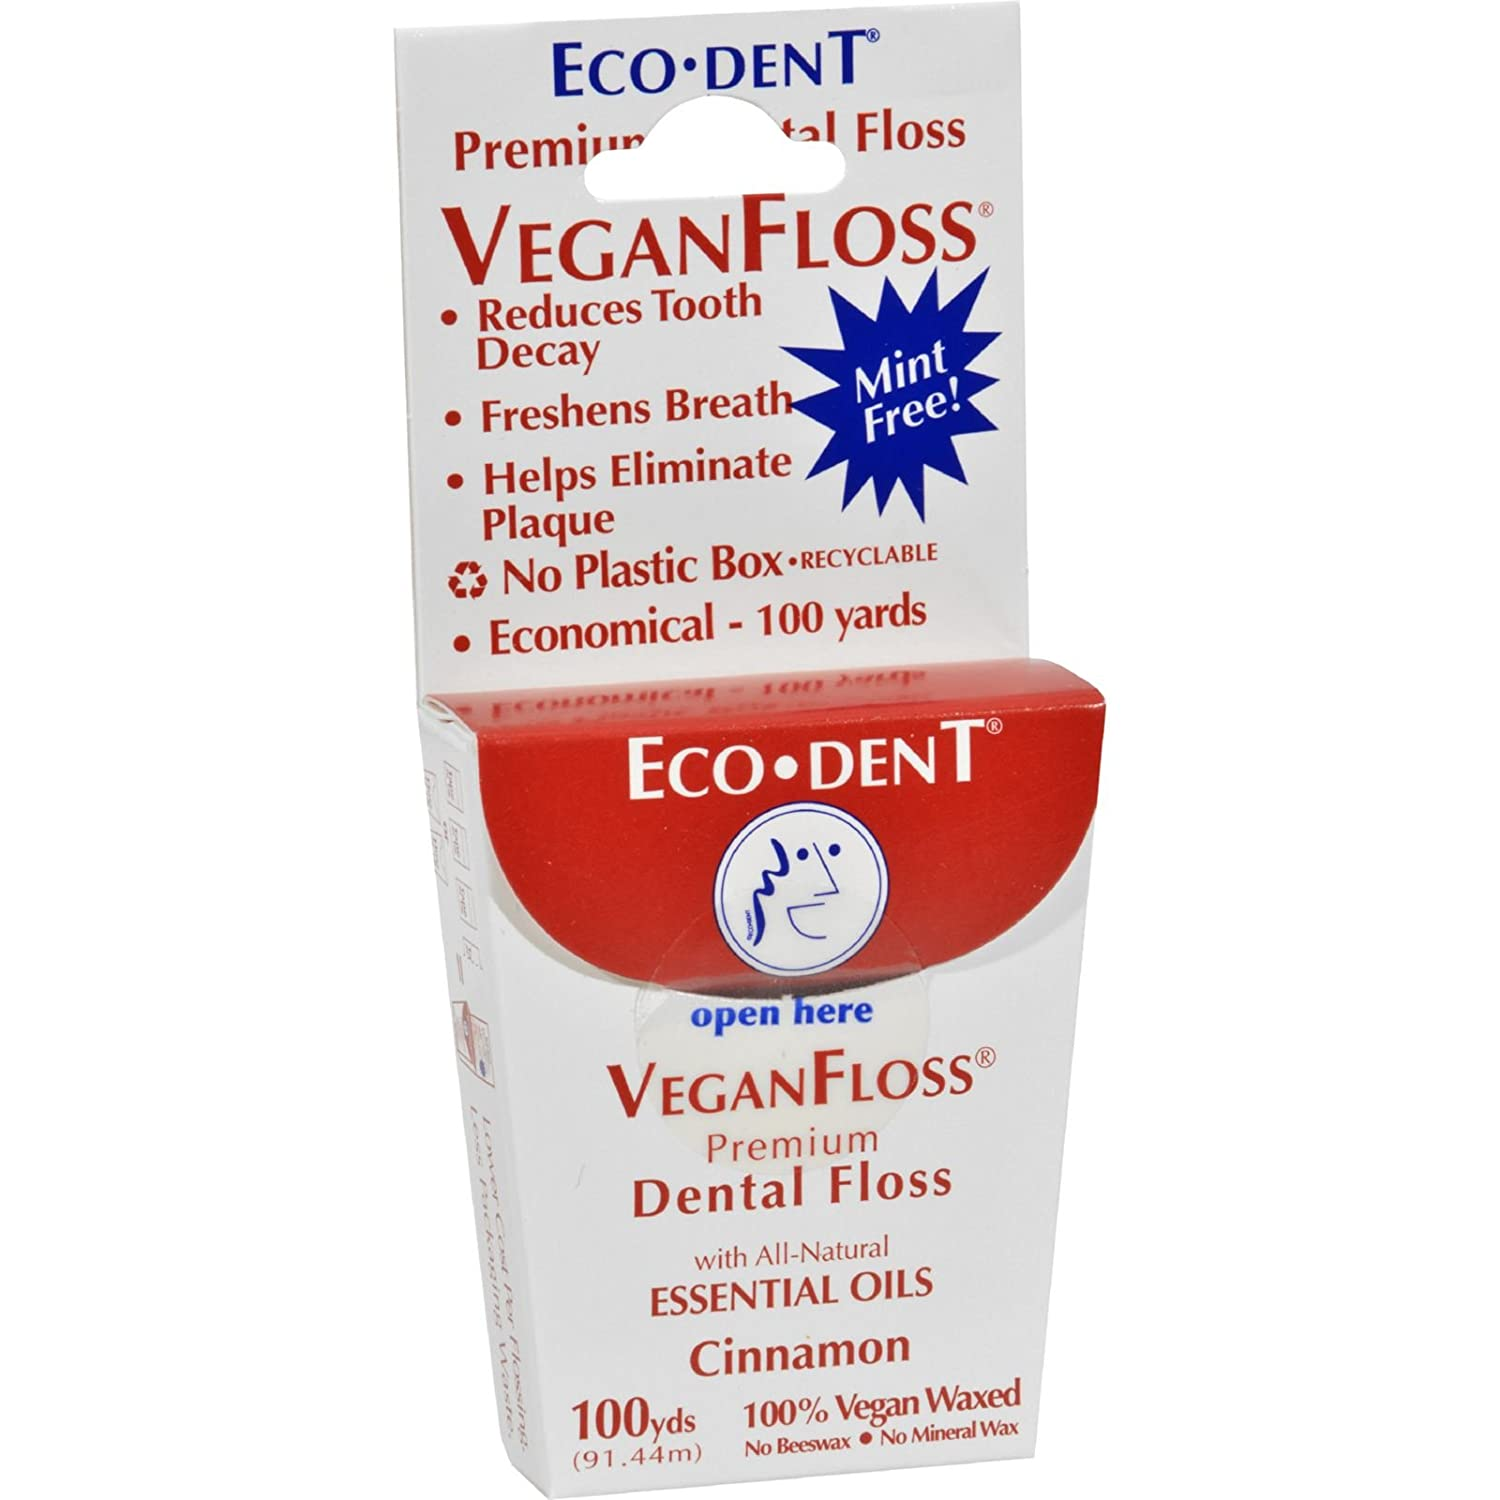 Eco-Dent VeganFloss Cinnamon (Pack of 6) 100 Yards